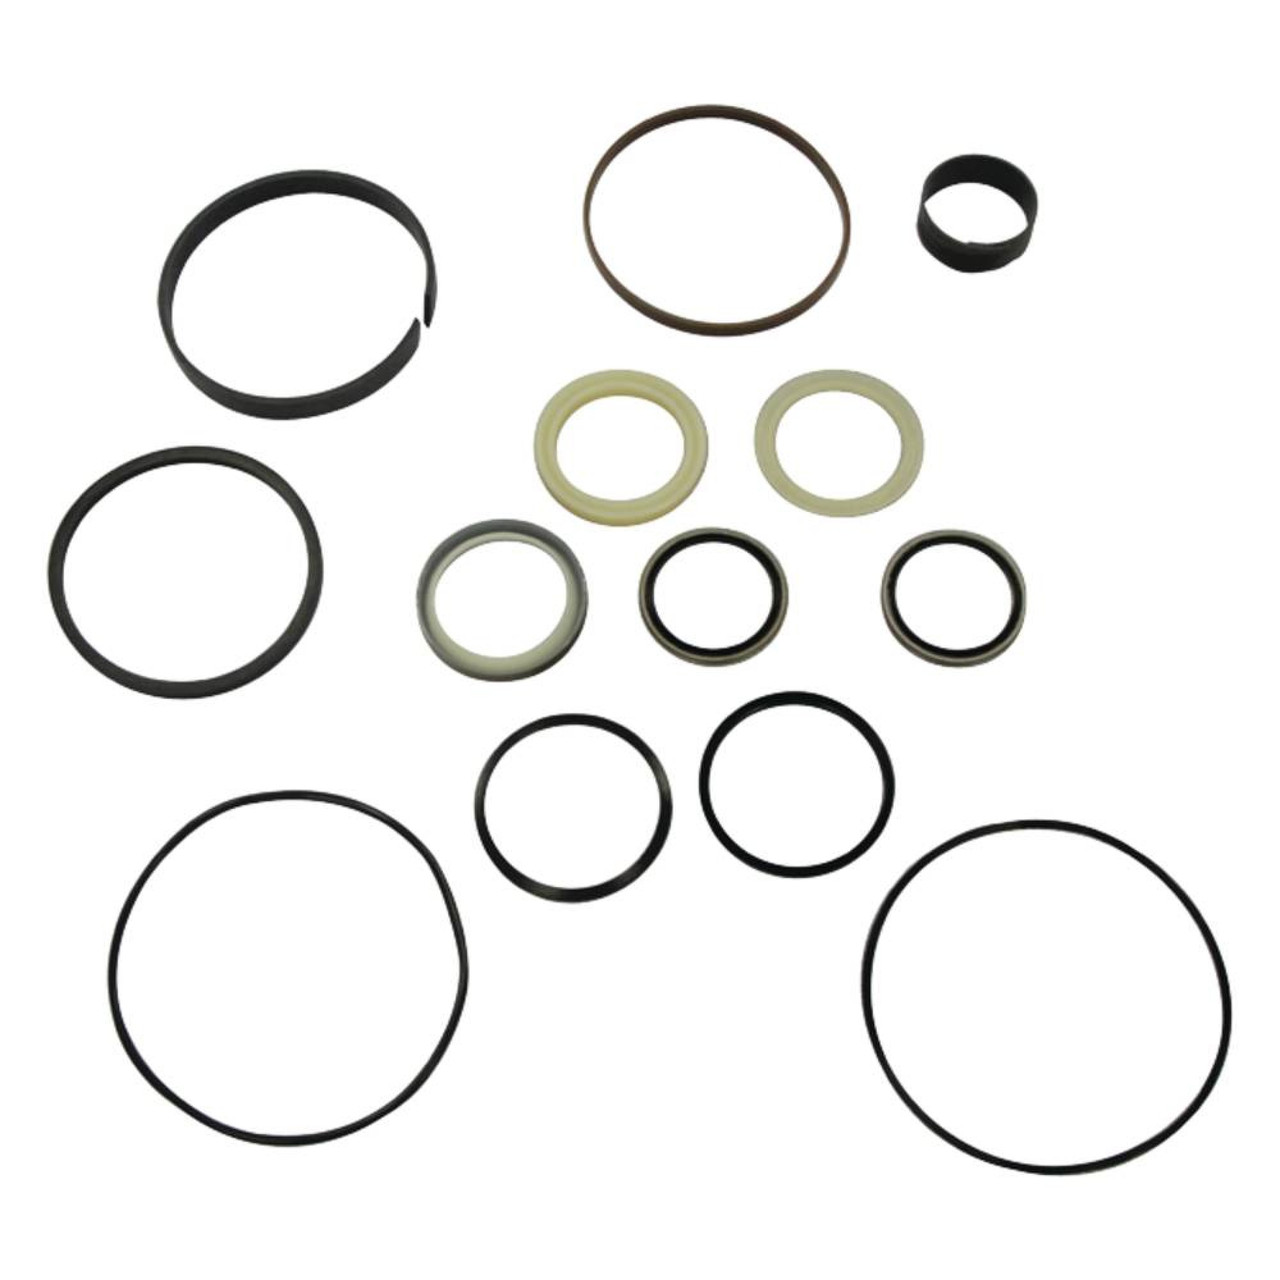 NEW Hydraulic Cylinder Seal Kit for Ford Tractor LB90